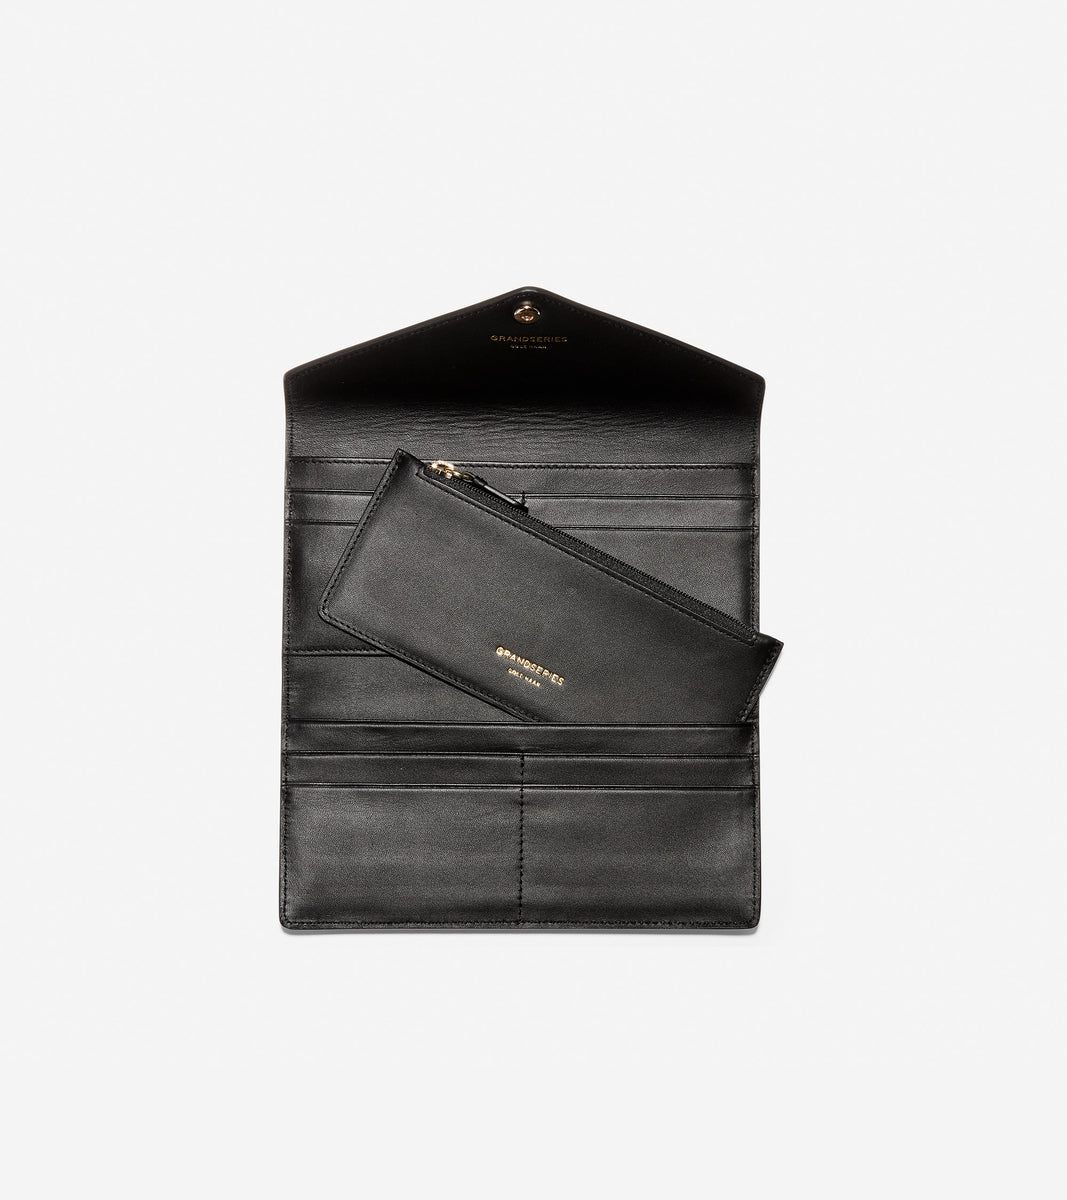 GRANDSERIES Flap Trifold Envelope Wallet